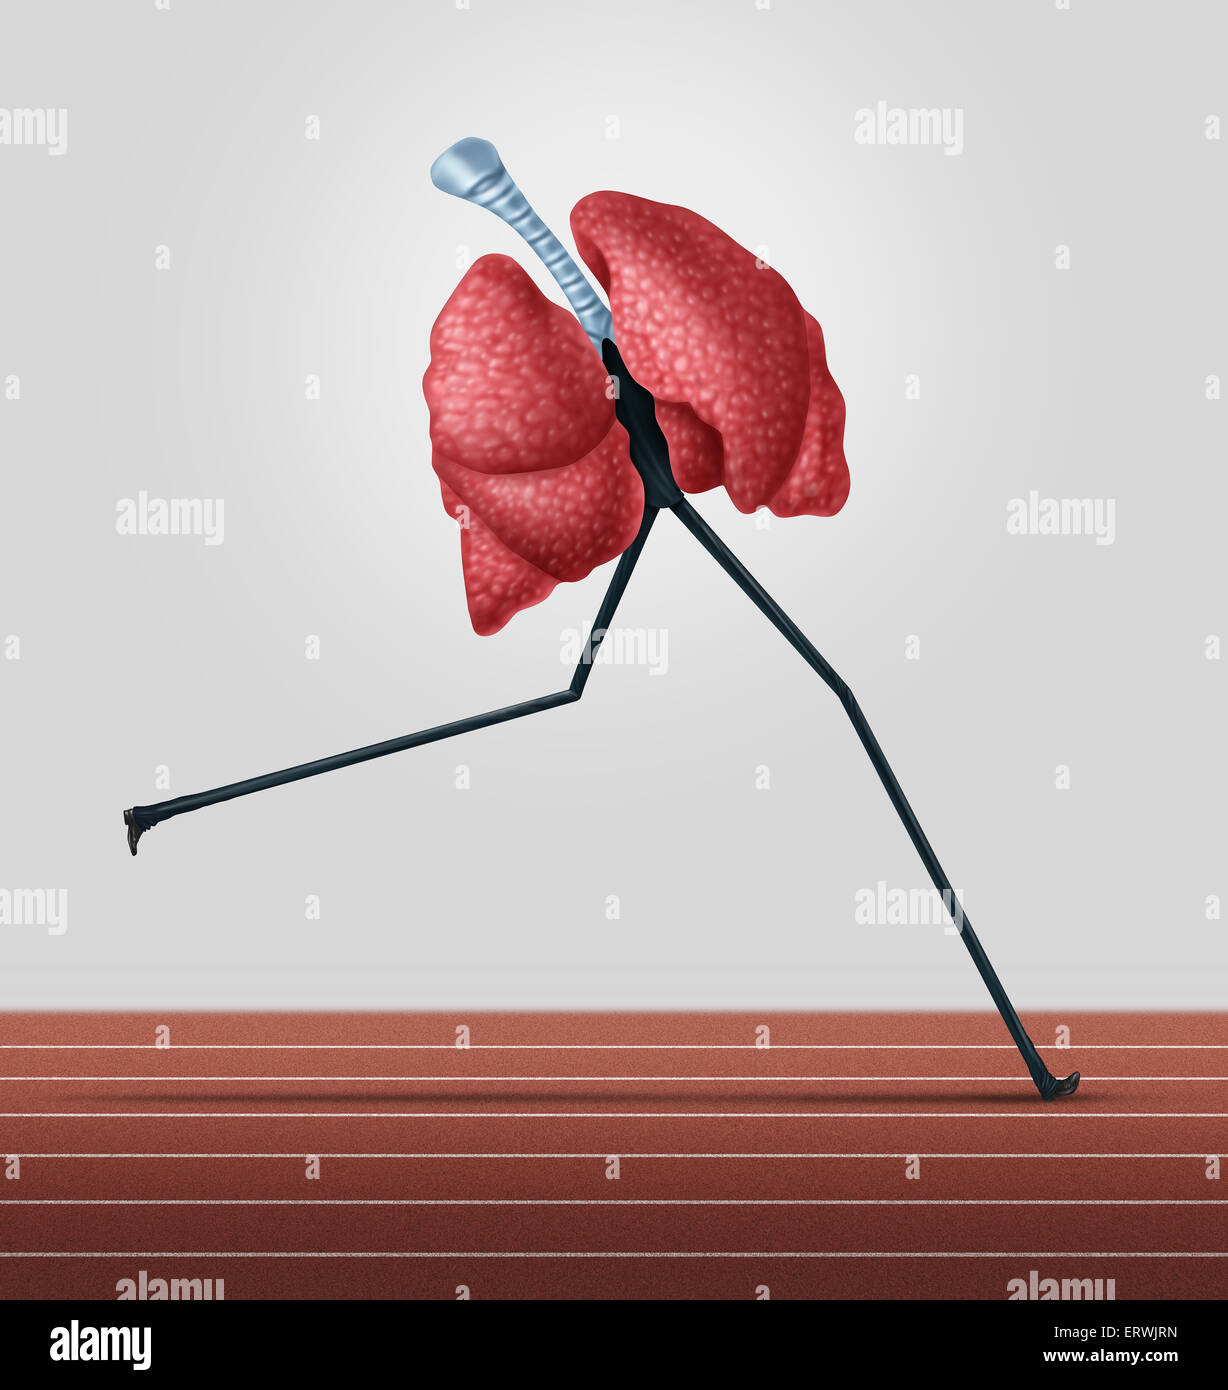 cardiovascular exercise and physical fitness concept as human lungs with legs running on a track as a healthy lifestyle - Stock Image